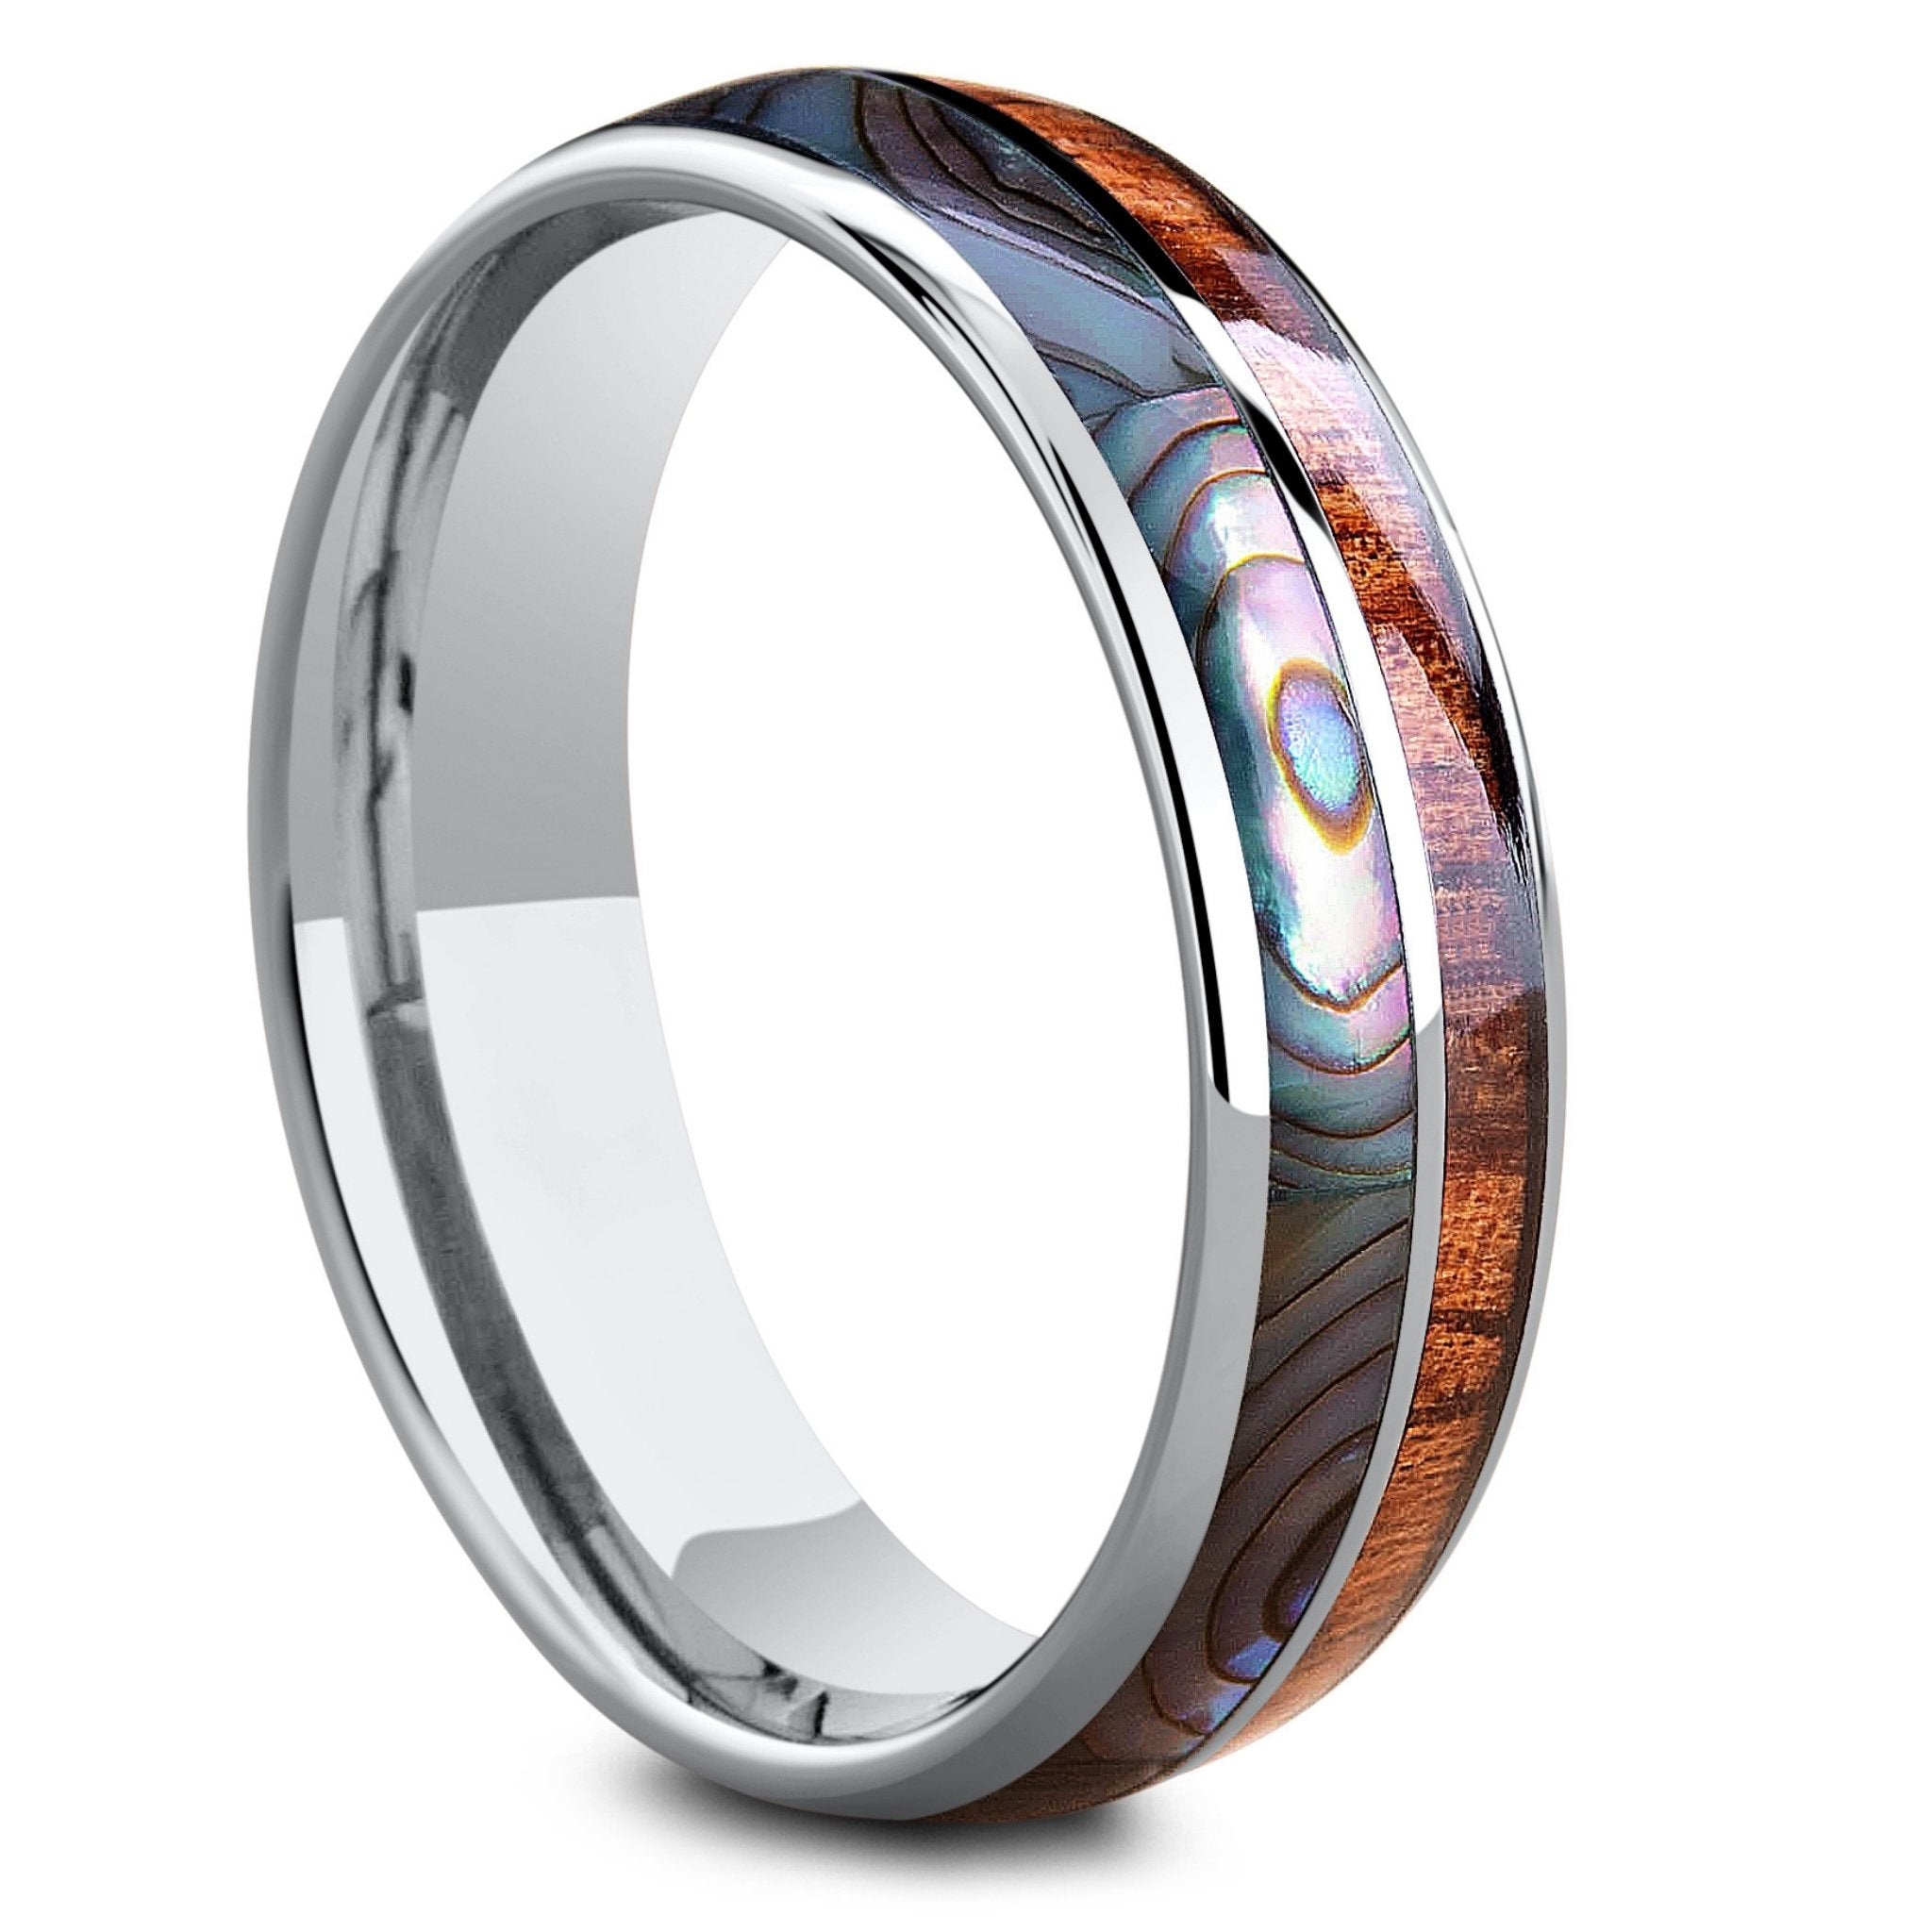 Koa Wood Abalone Tungsten Two Tone Wedding Ring Half Northern